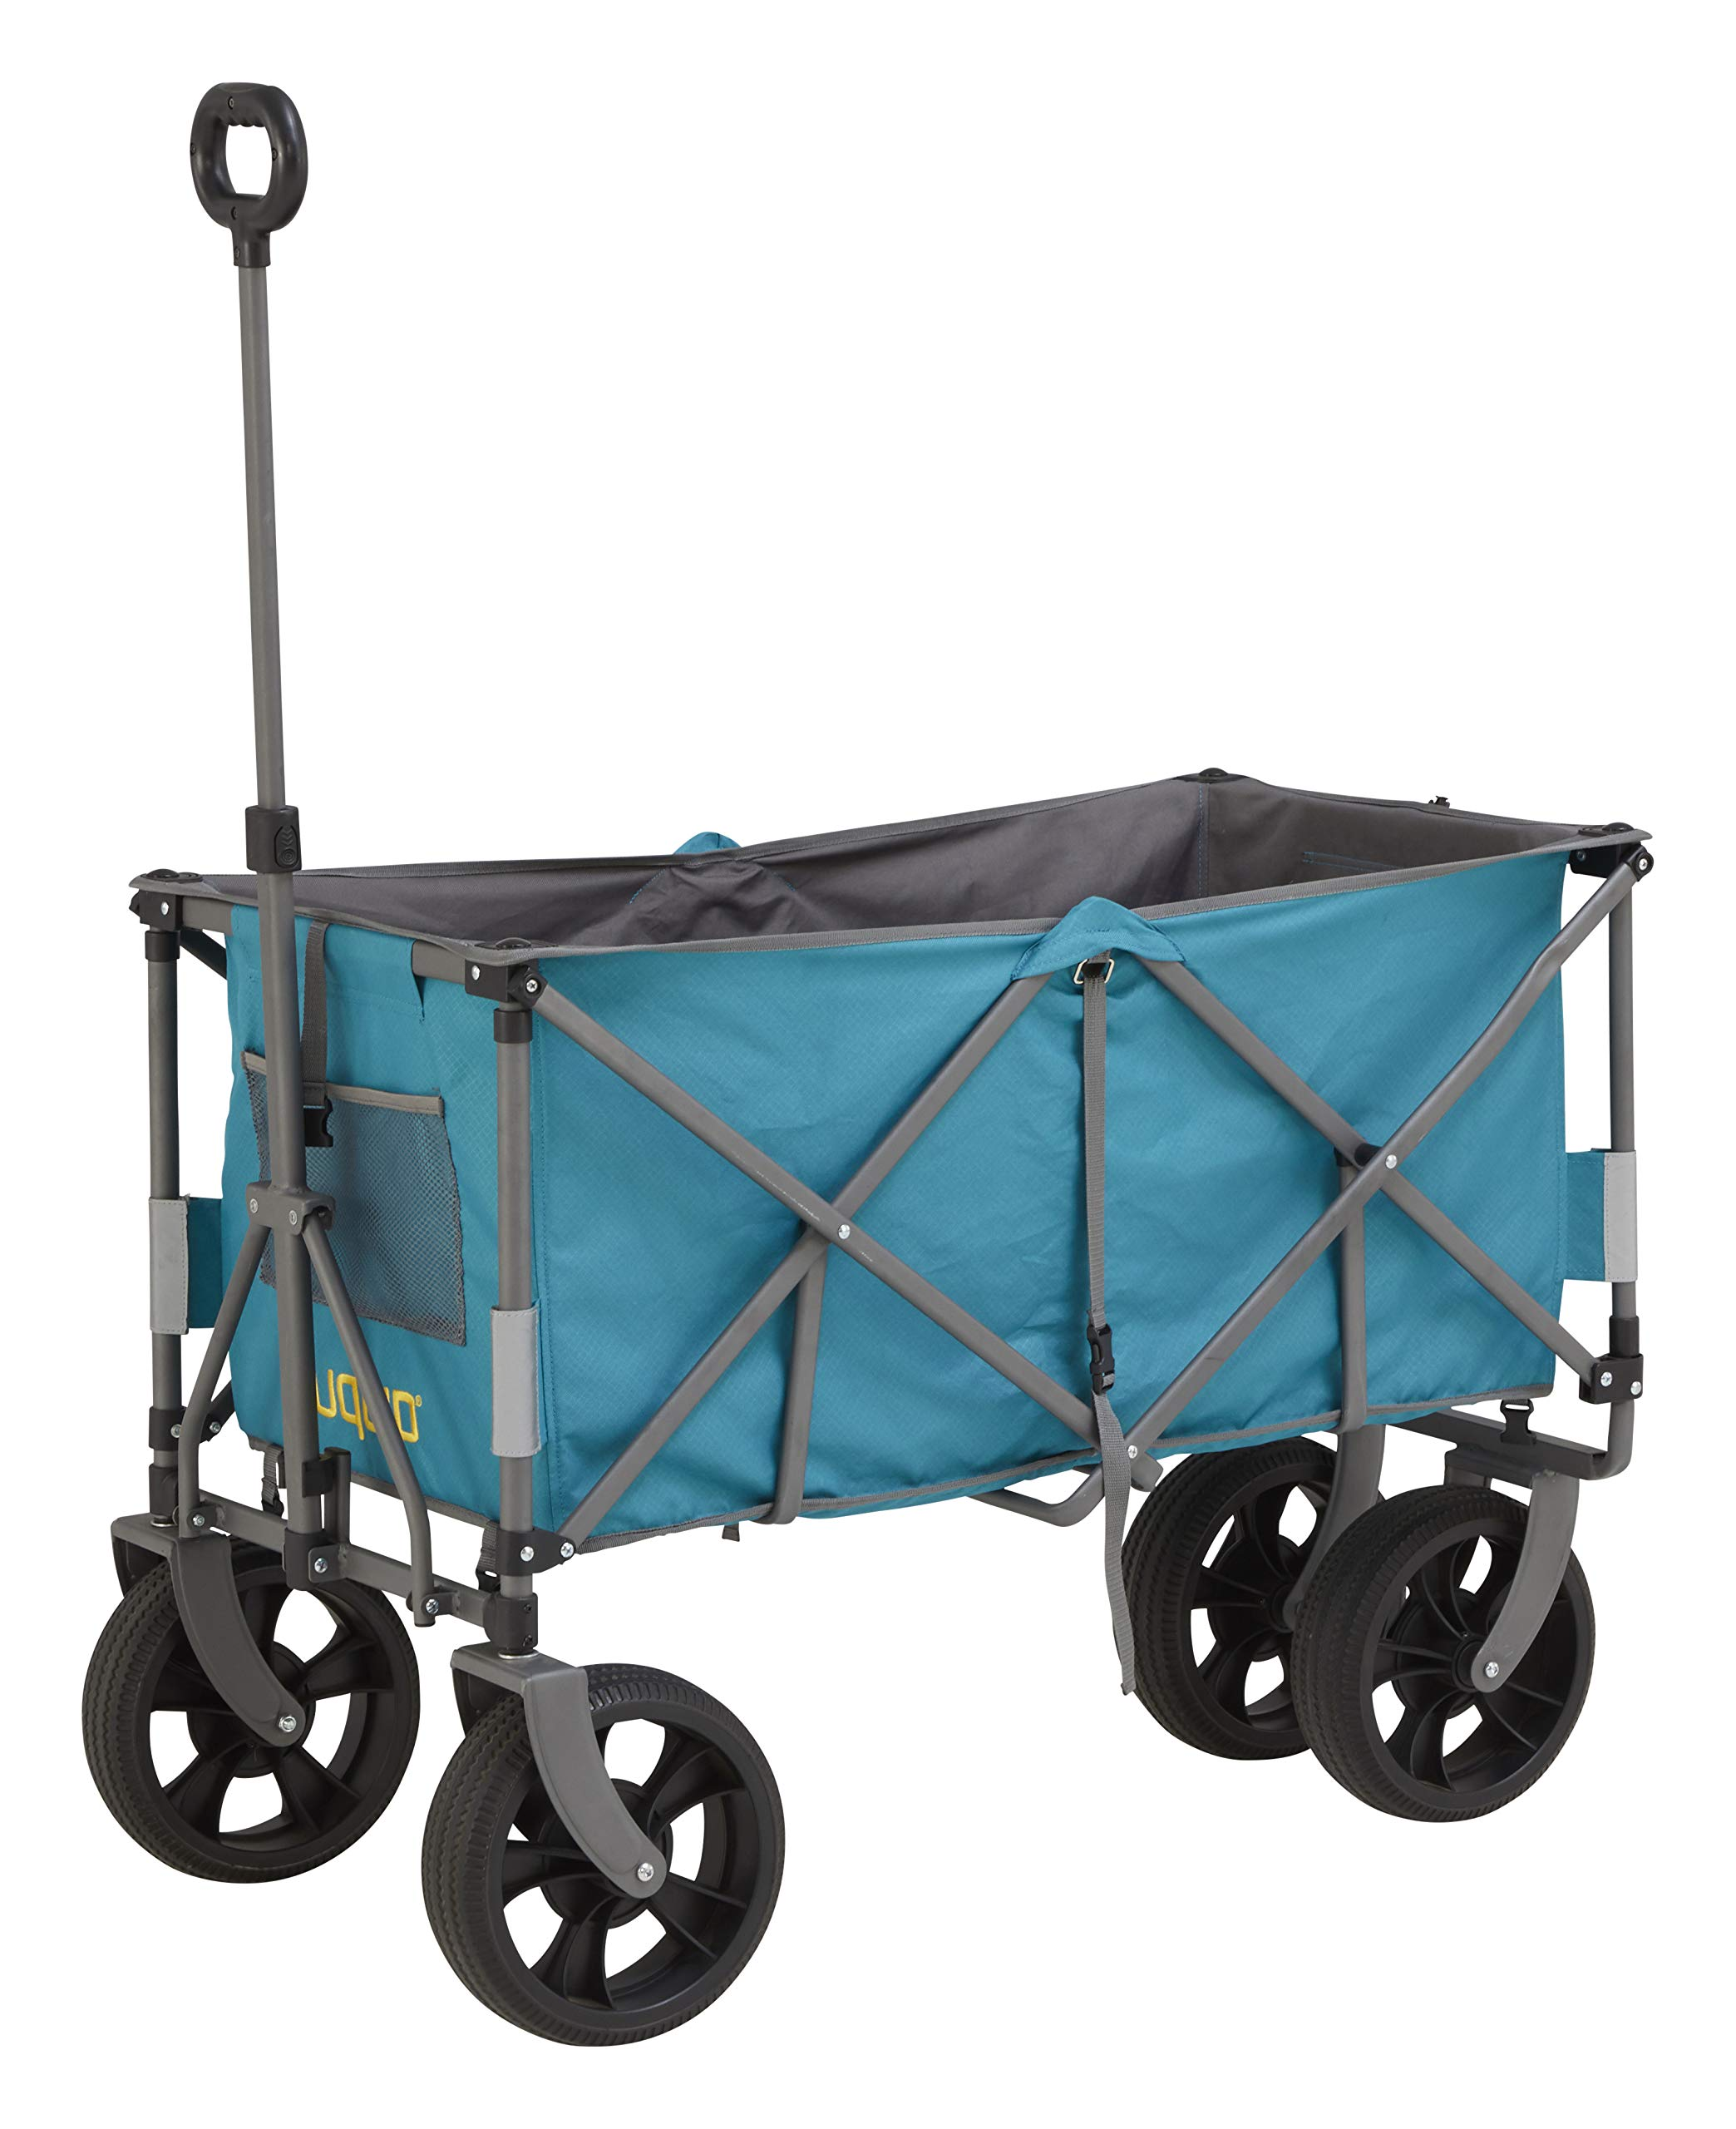 Uquip Foldable Hand Wagon Holly XXL - Solid Rubber Tires, Large Capacity, up to 220lbs